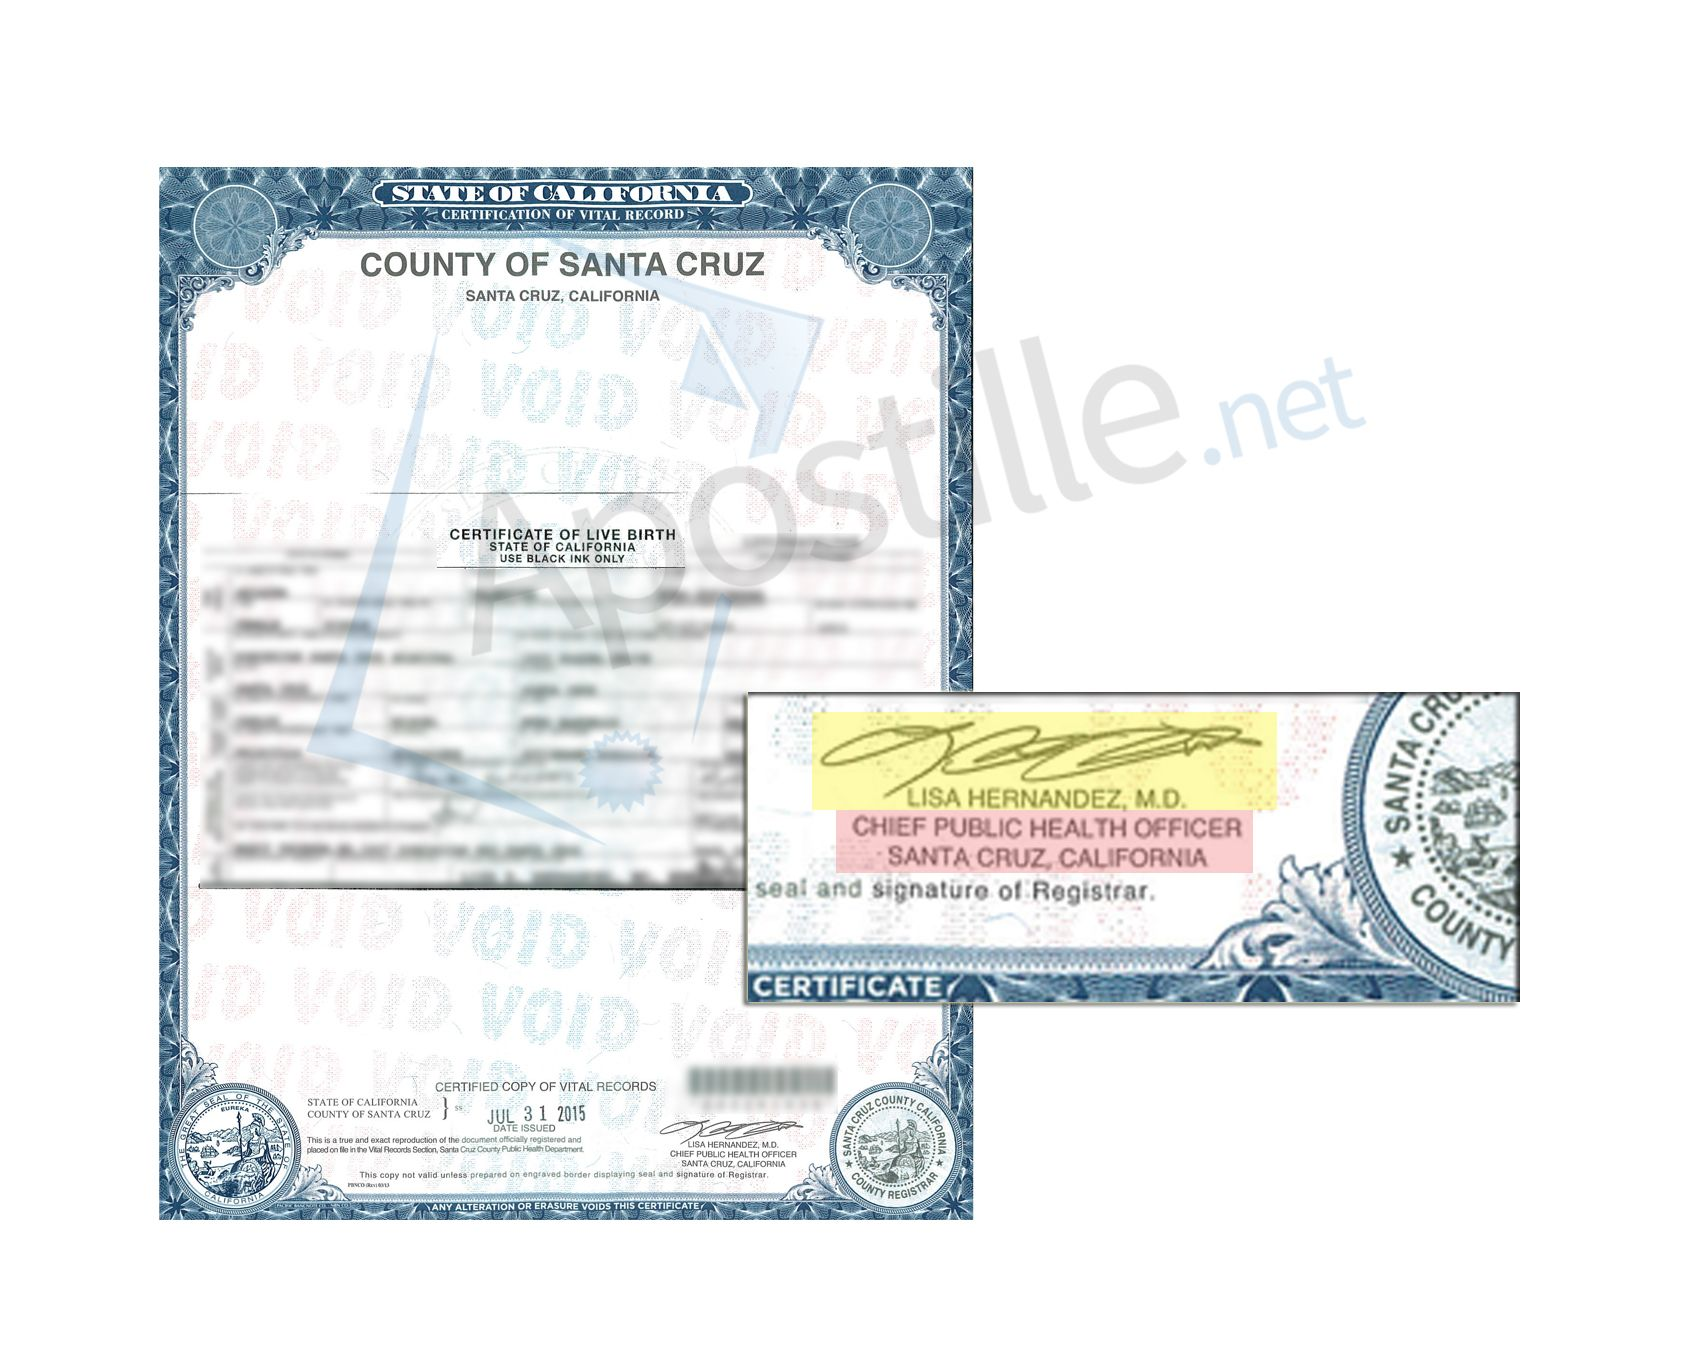 County of Santa Cruz Certificate of Birth signed by Lisa